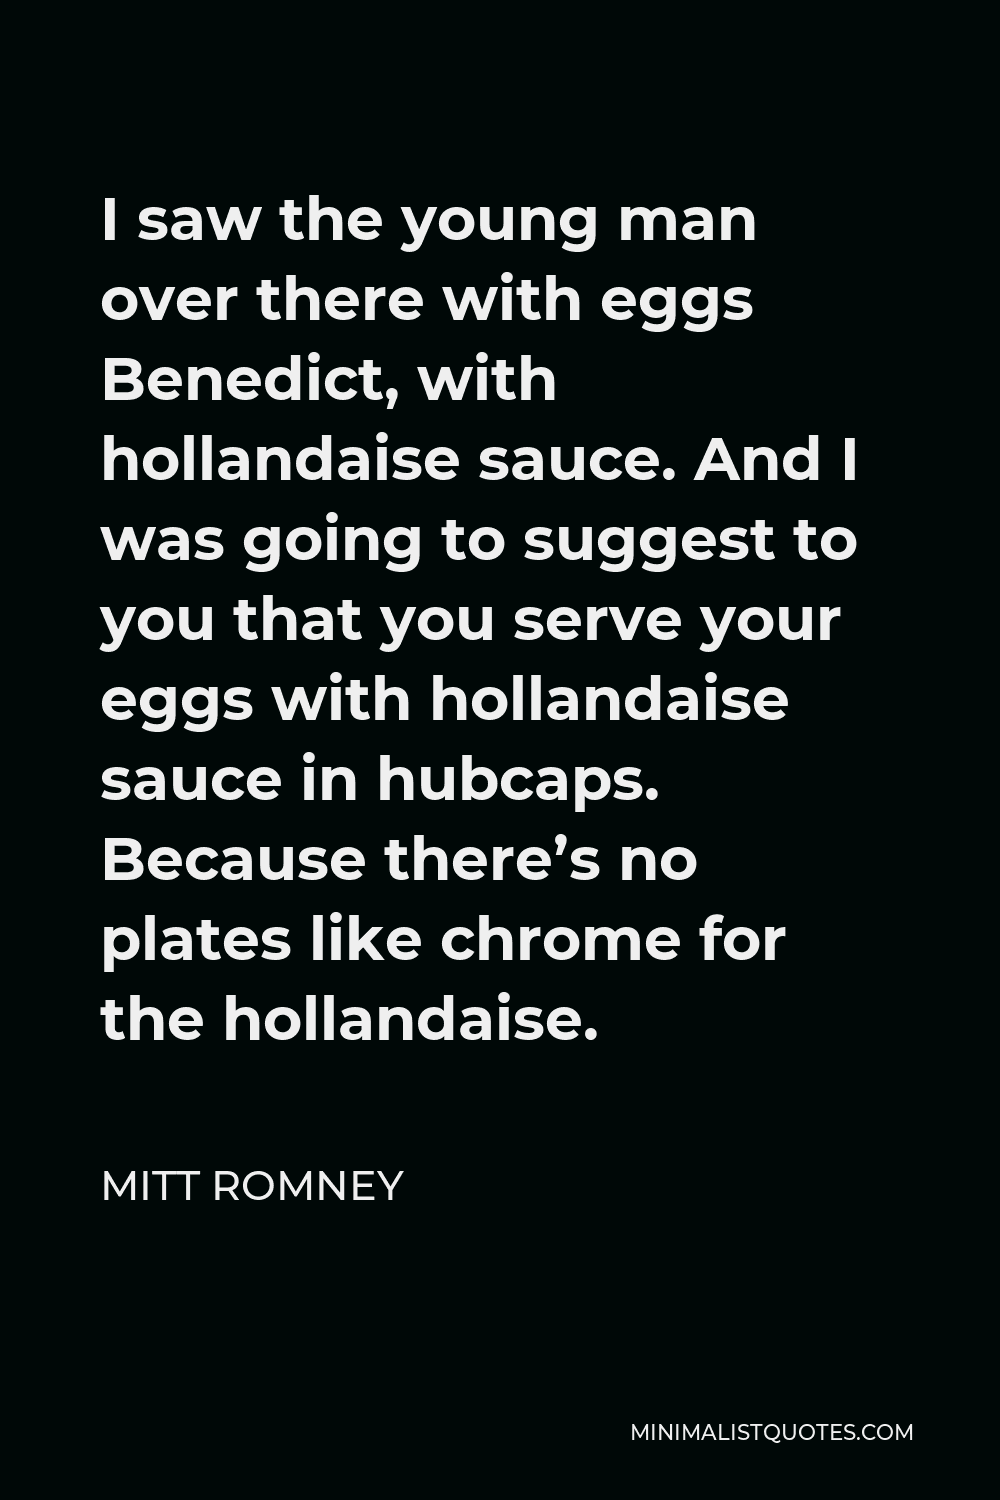 Mitt Romney Quote - I saw the young man over there with eggs Benedict, with hollandaise sauce. And I was going to suggest to you that you serve your eggs with hollandaise sauce in hubcaps. Because there's no plates like chrome for the hollandaise.